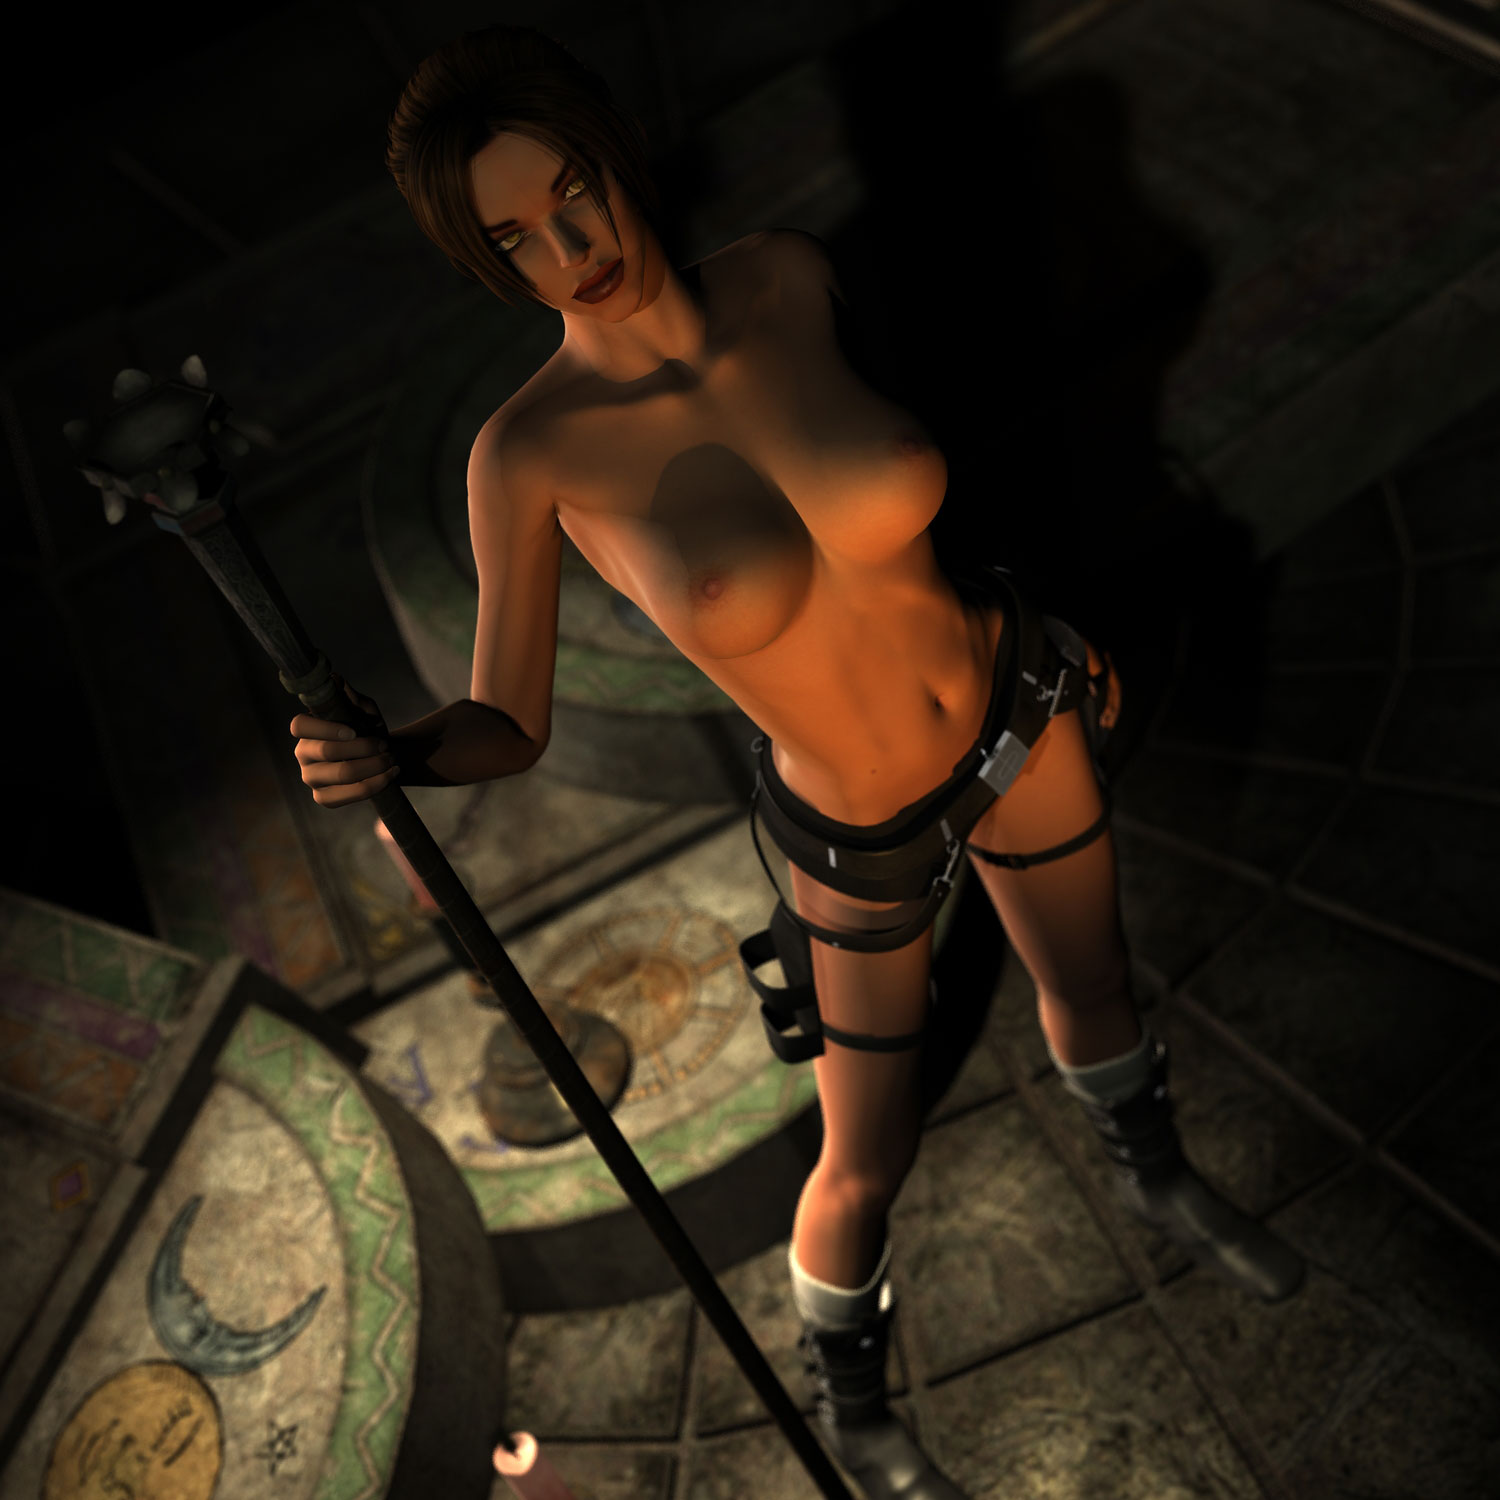 Tomb raider lara croft hentai image 3d nude movie